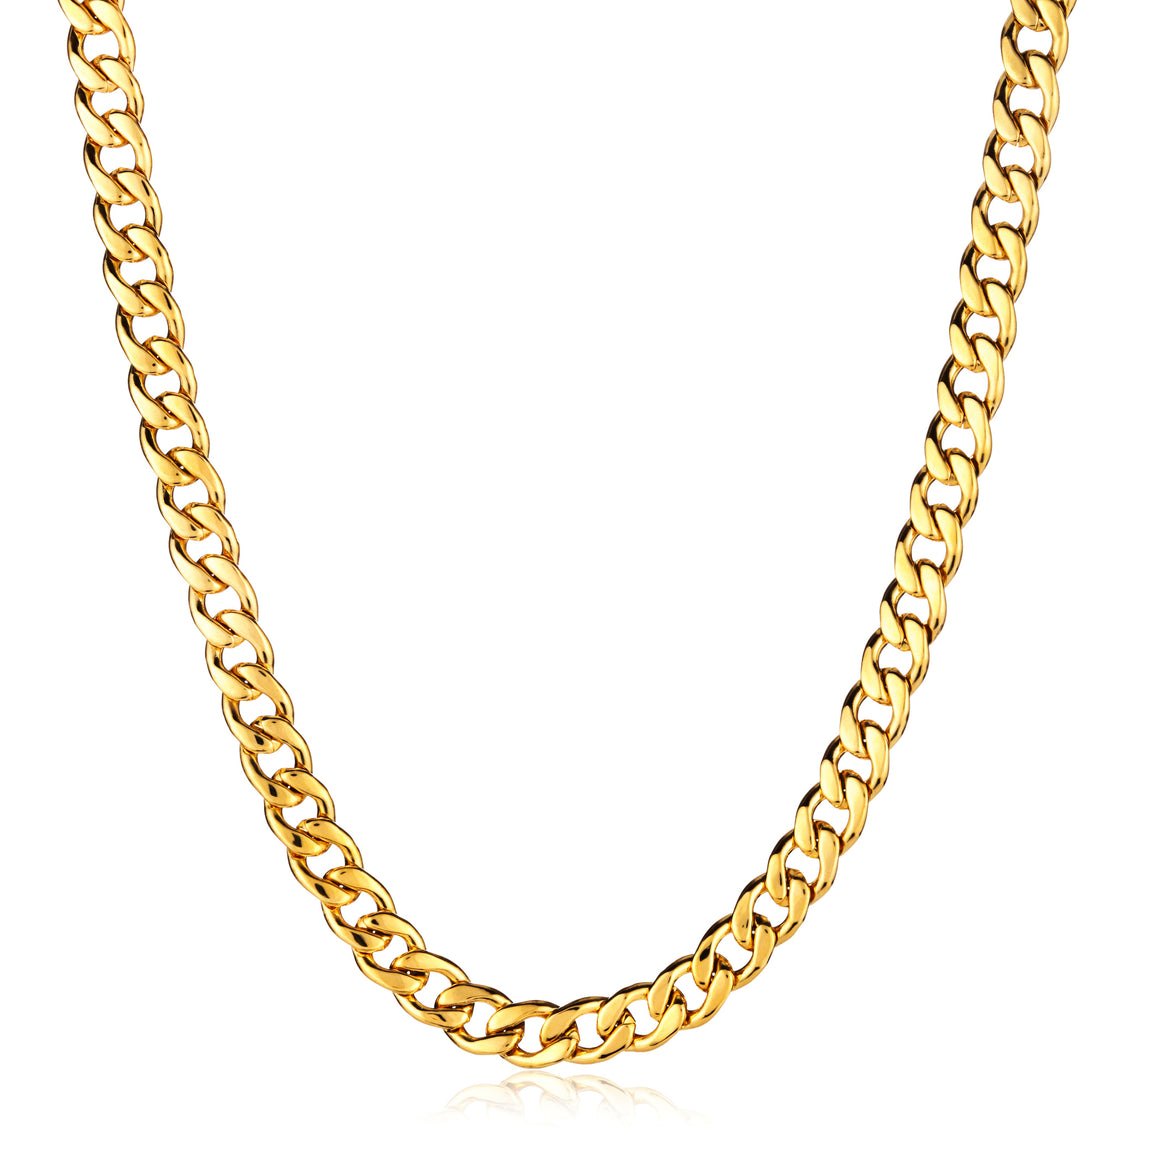 Crucible Men's Stainless Steel Curb Chain Necklace